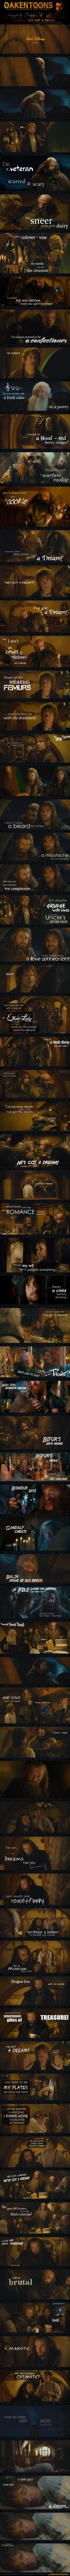 "Never in a million years would I have predicted a ""Tangled"" and ""Hobbit"" crossover to this extreme awesomeness."